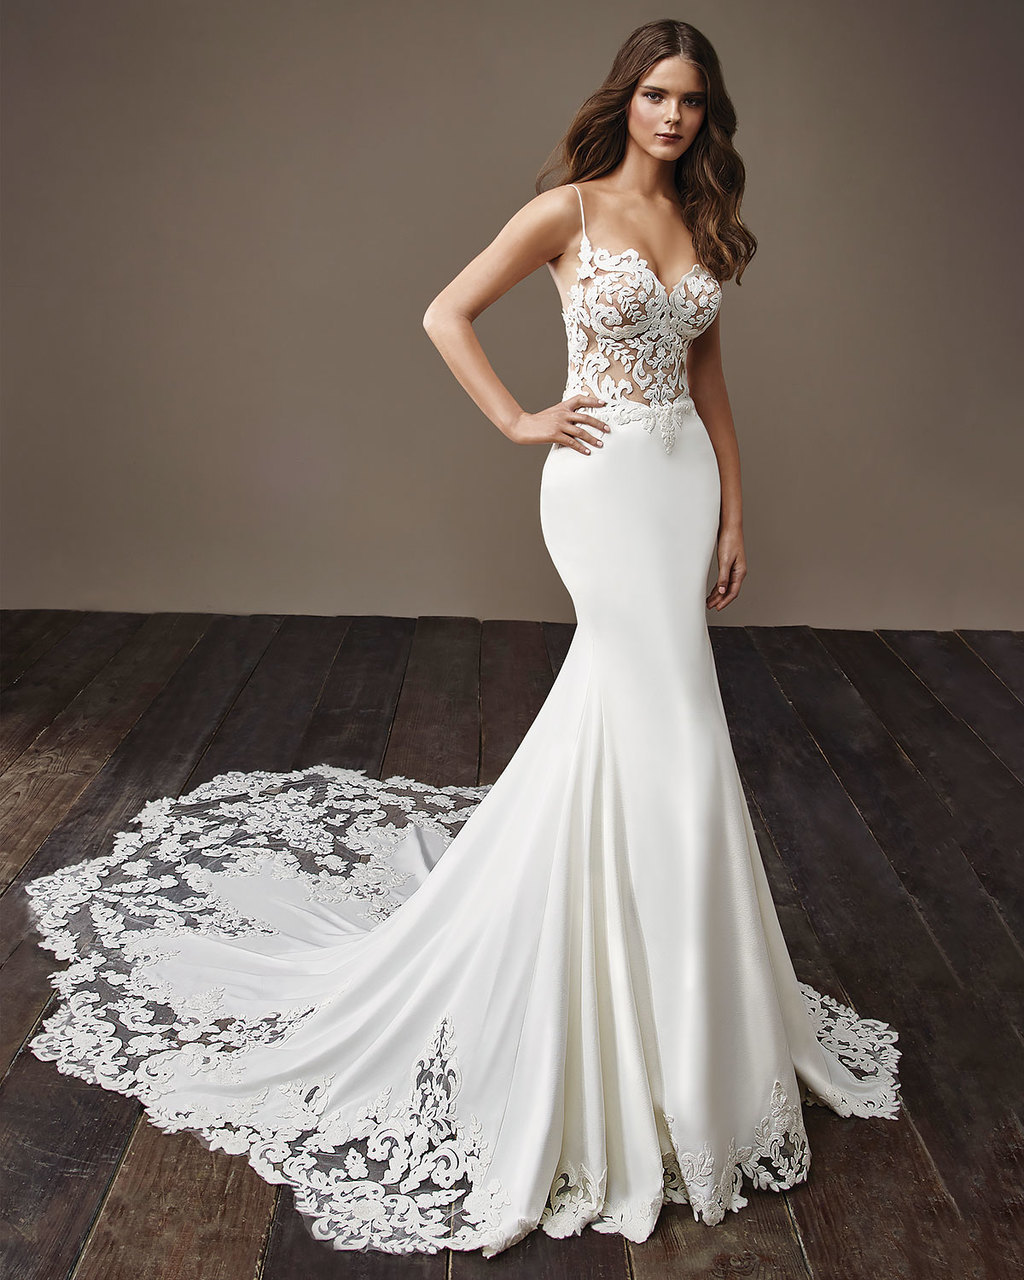 Blake:  A stunning georgette fit and flare gown with a lace illusion bodice and a jaw-dropping lace illusion train.